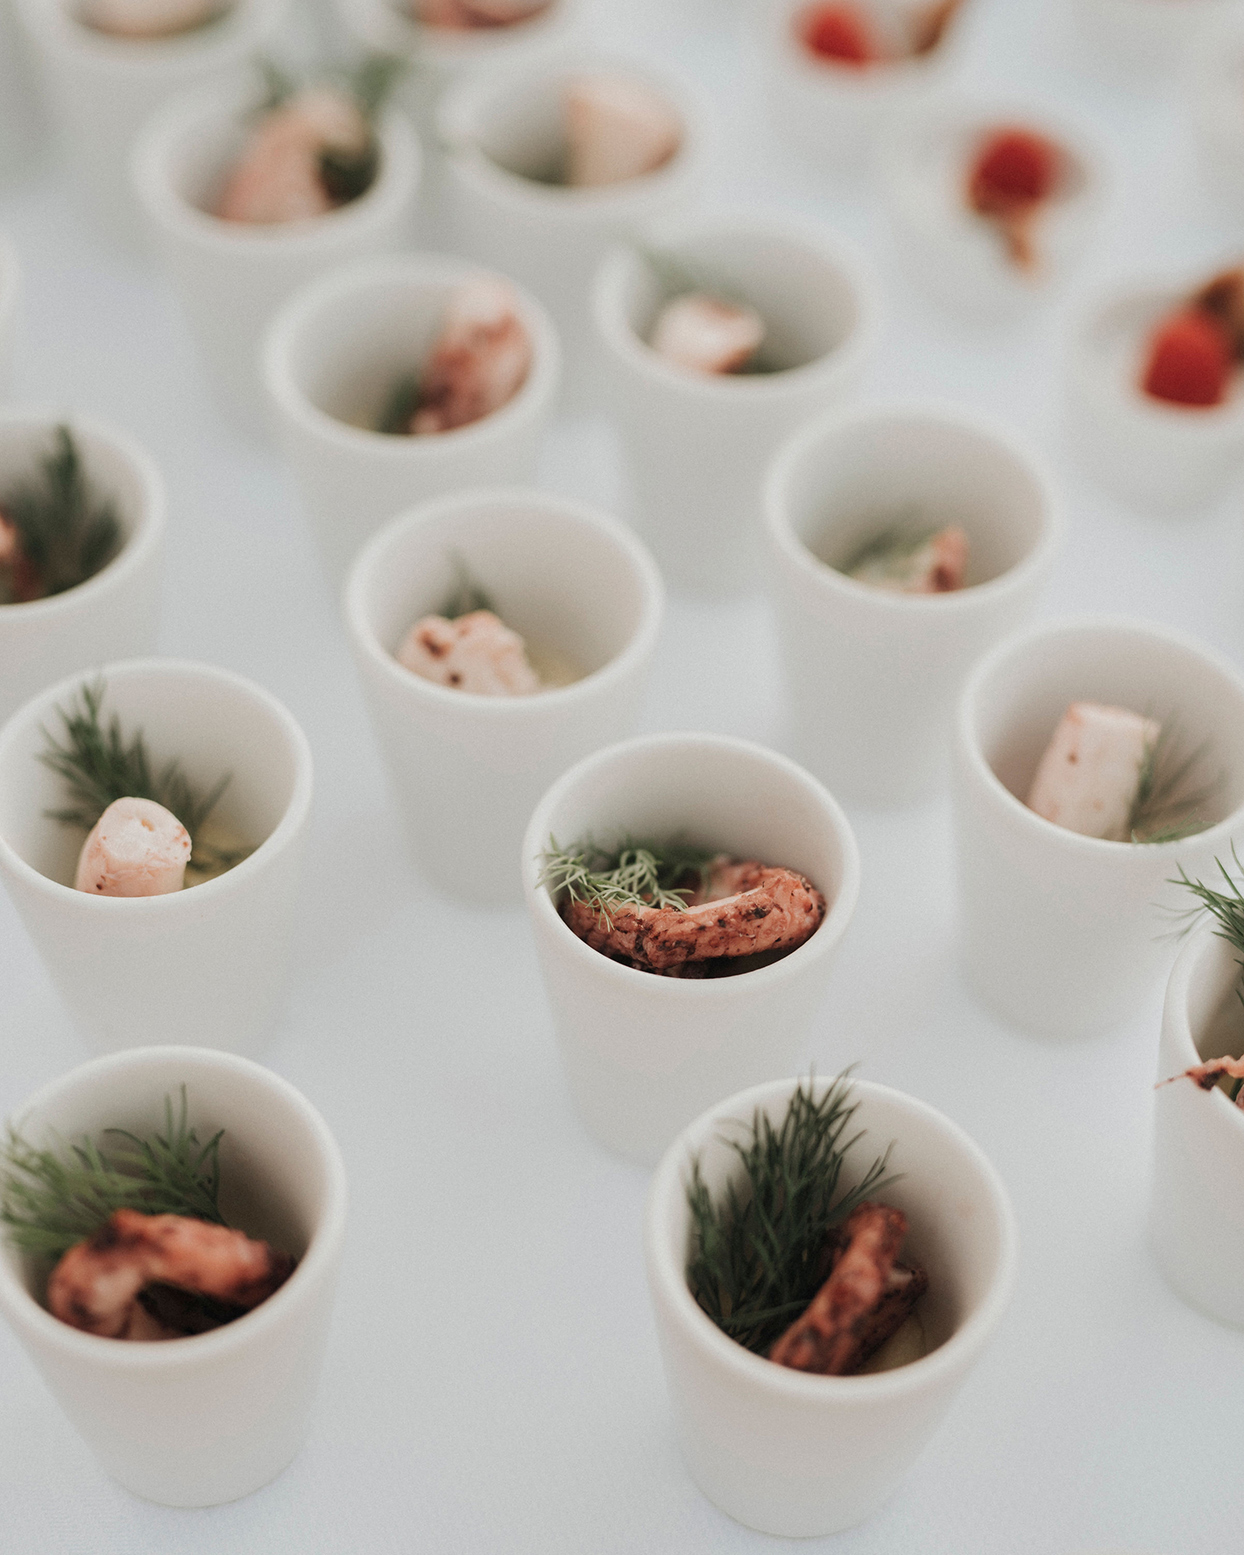 jaclyn antonio wedding shrimp in cups food